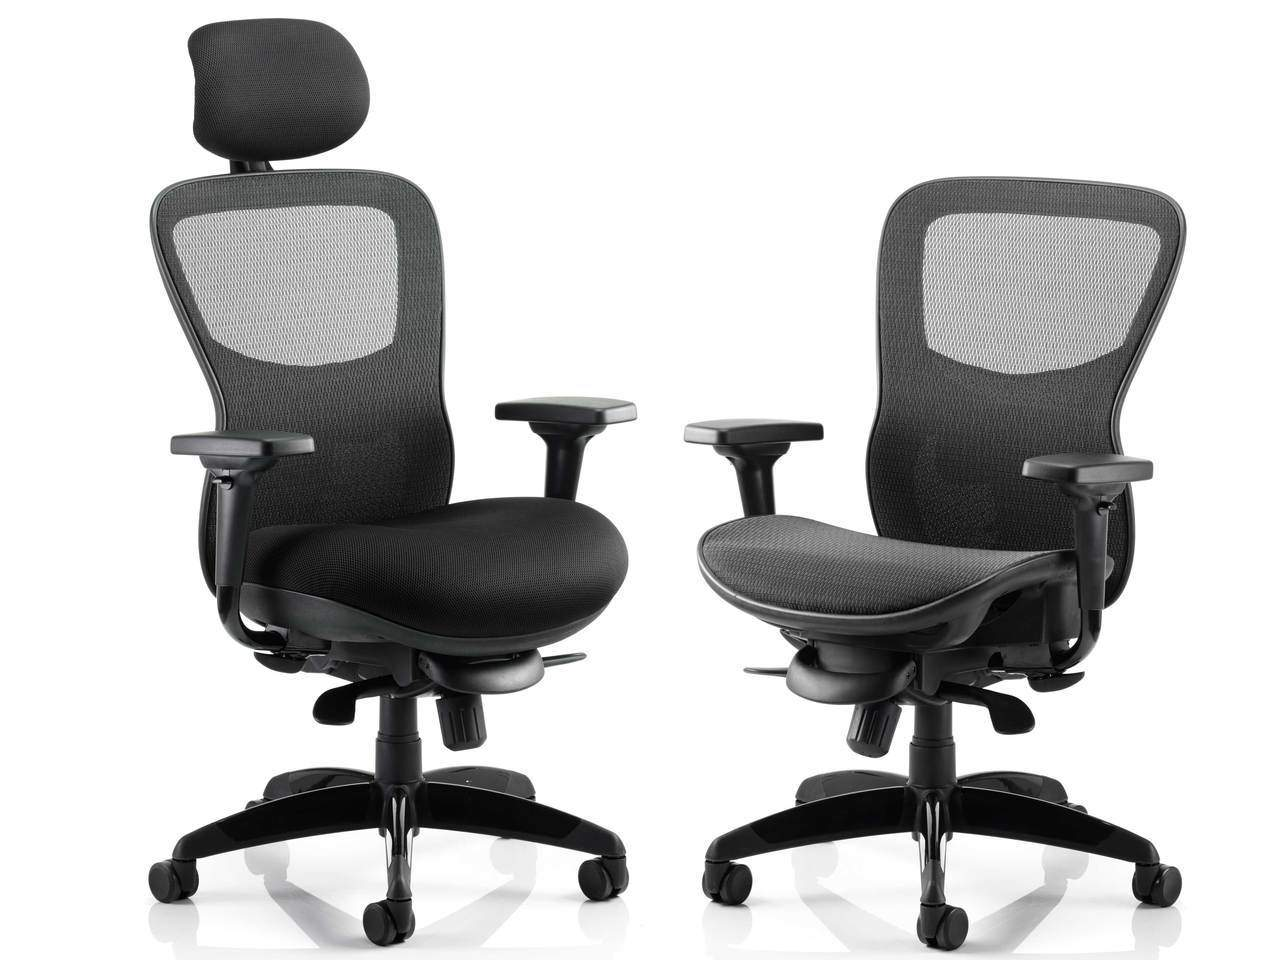 24 Hour Office Chairs Stealth 24 Hour Ergonomic Posture Mesh Operator Office Chair